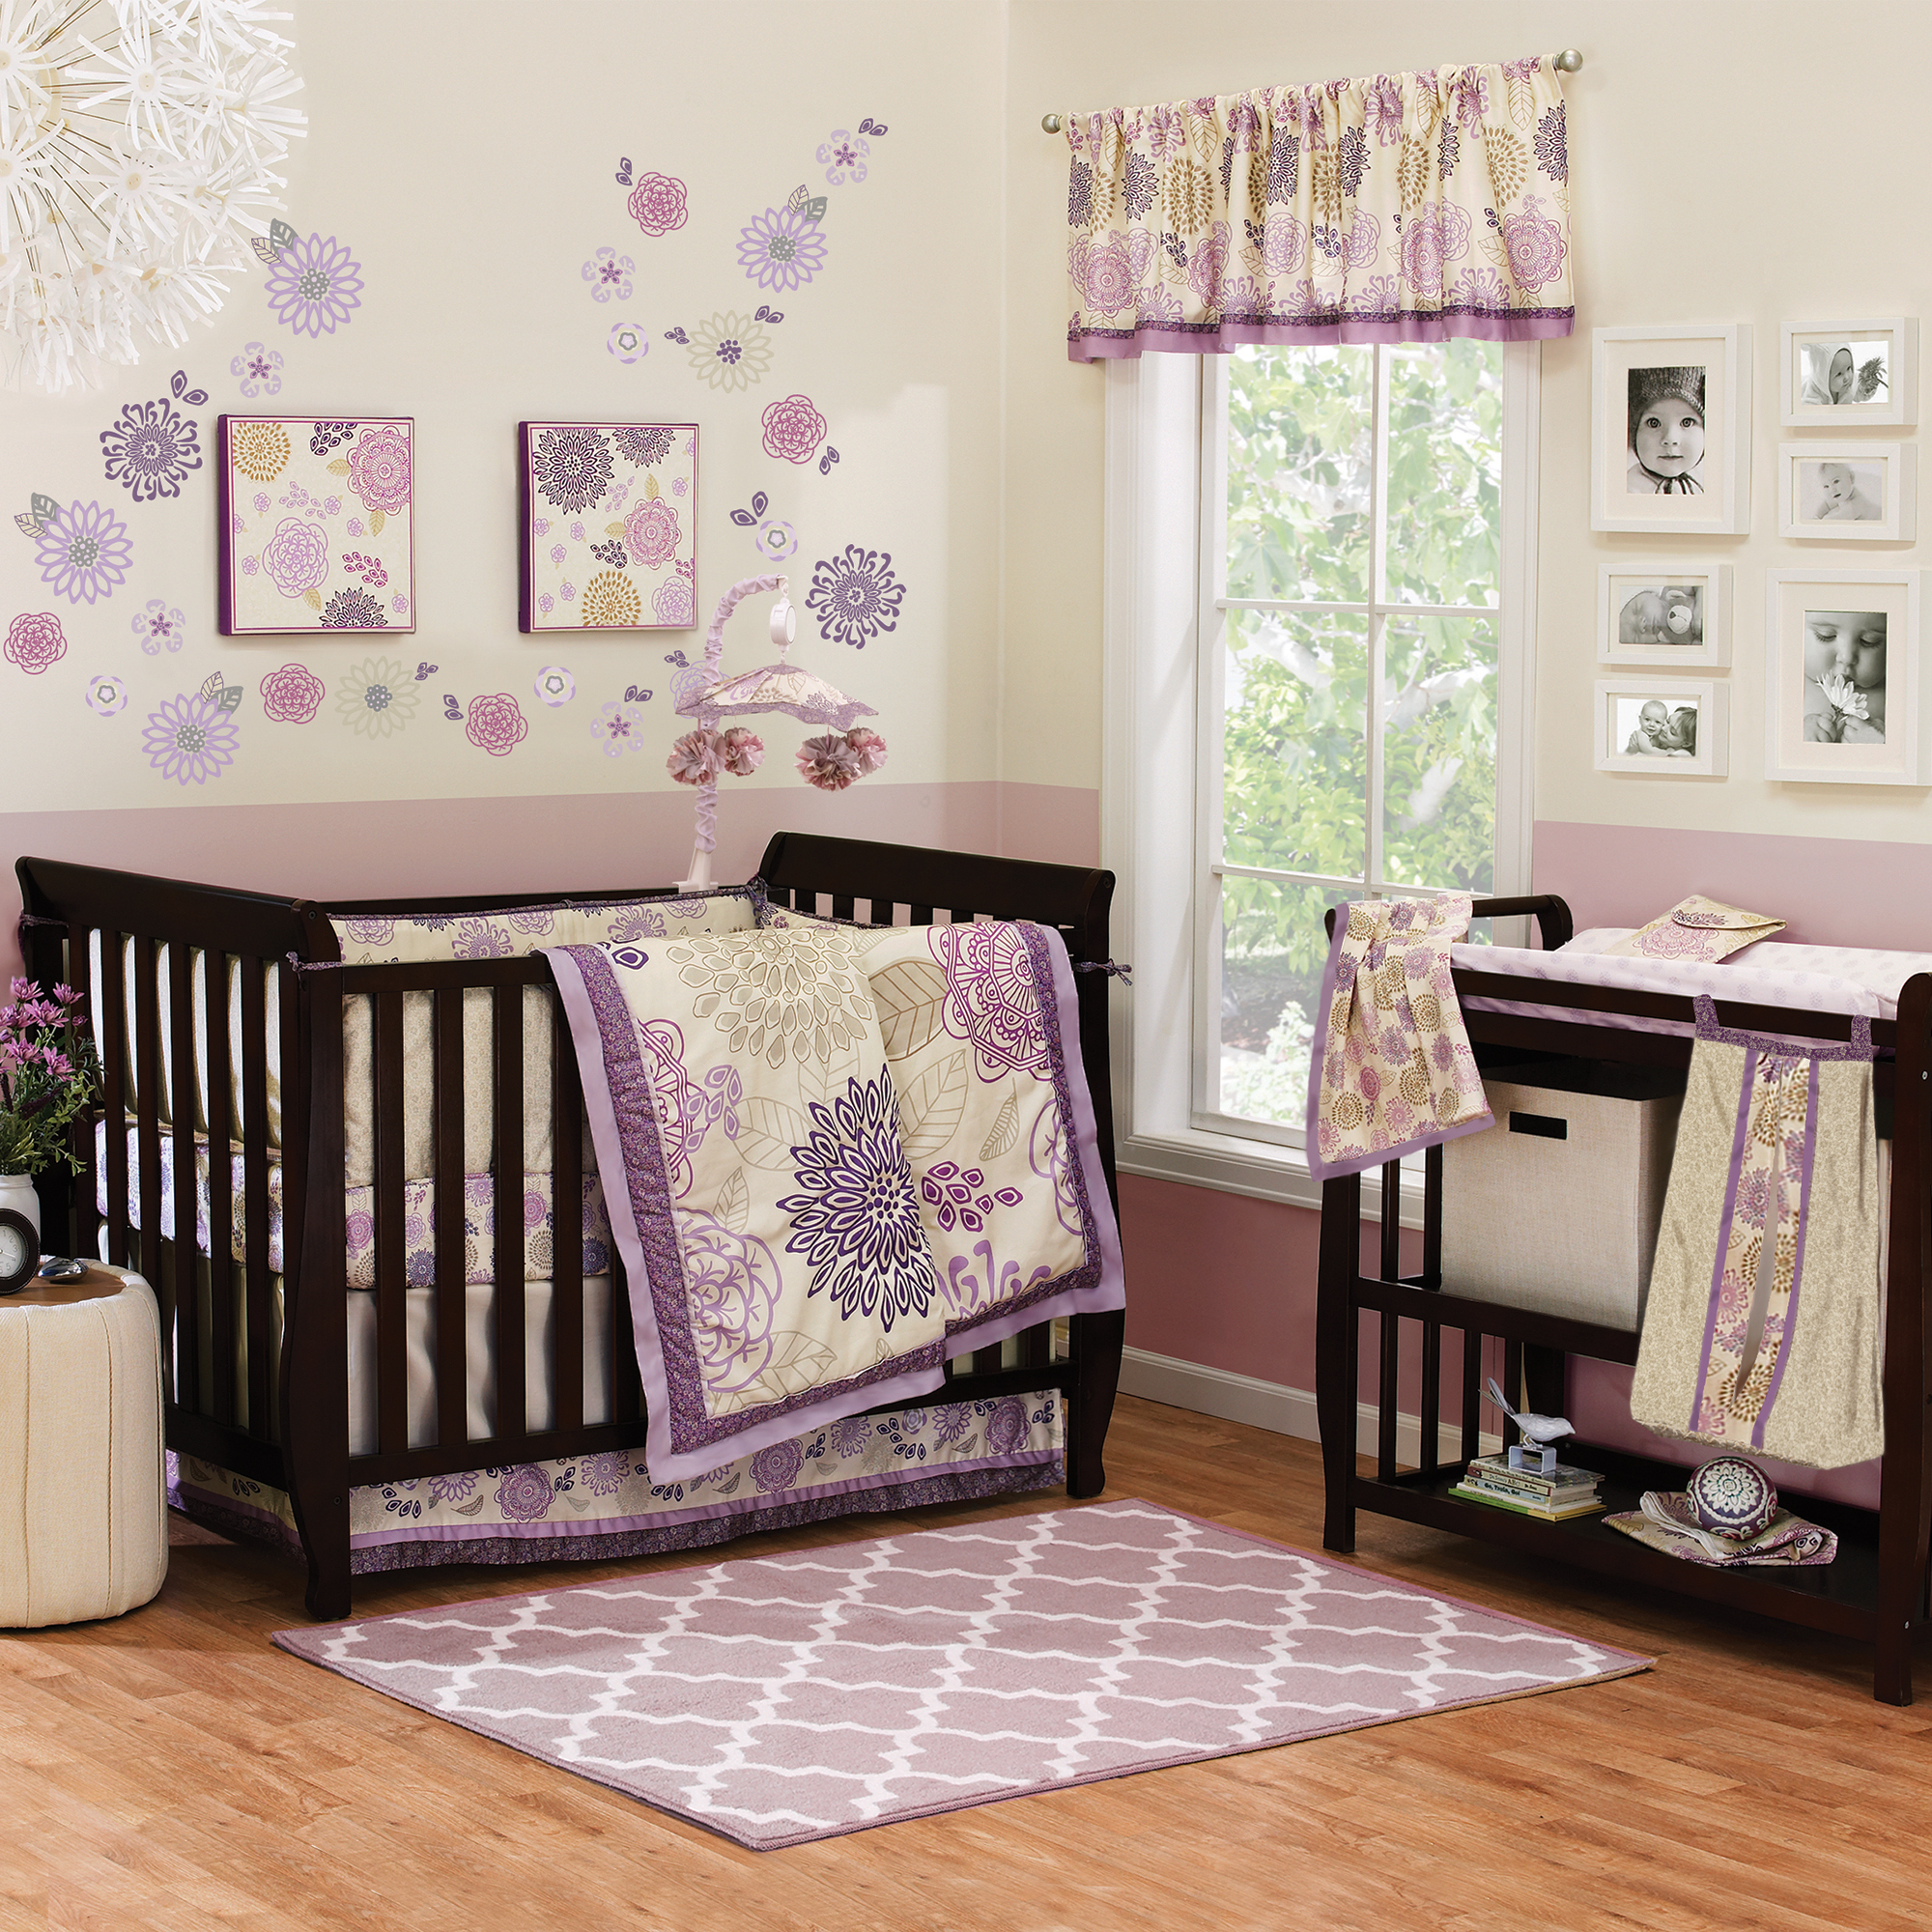 Baby bedding sets Crib bedding sets made from the peanut WVHQMUA